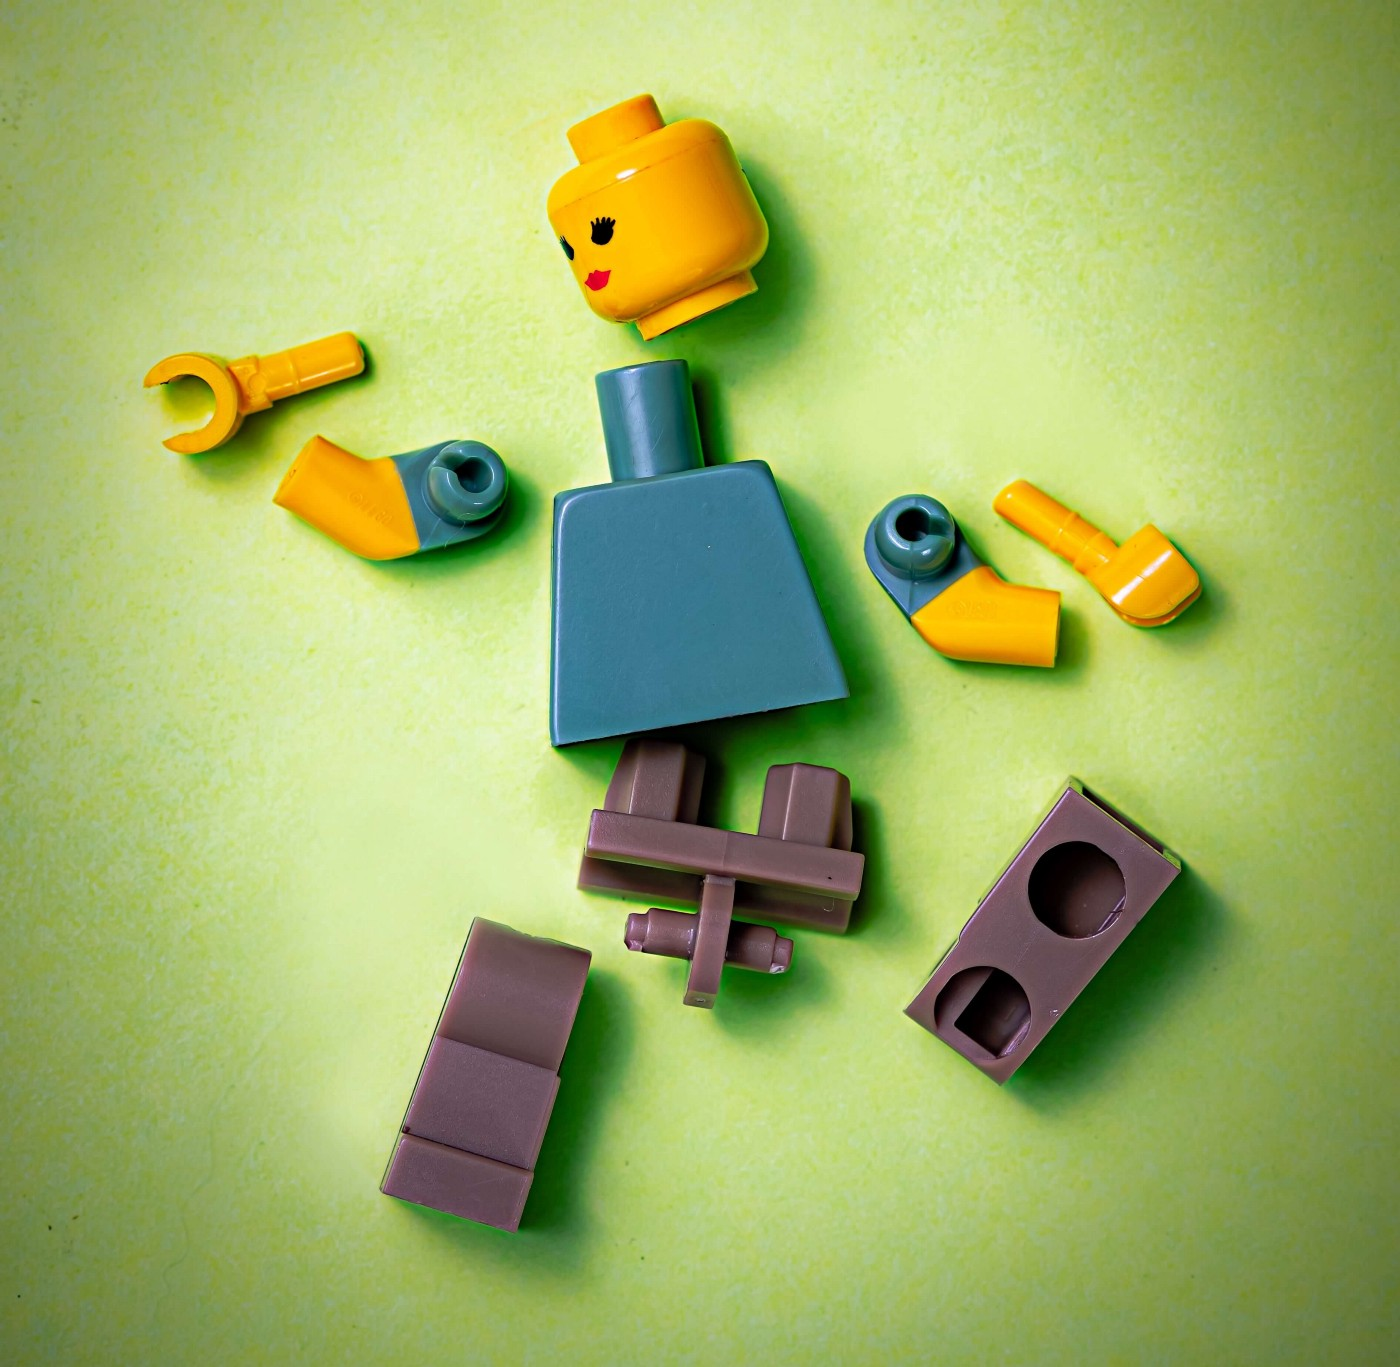 Lego piece in pieces. Metaphor for your brain. Boom.